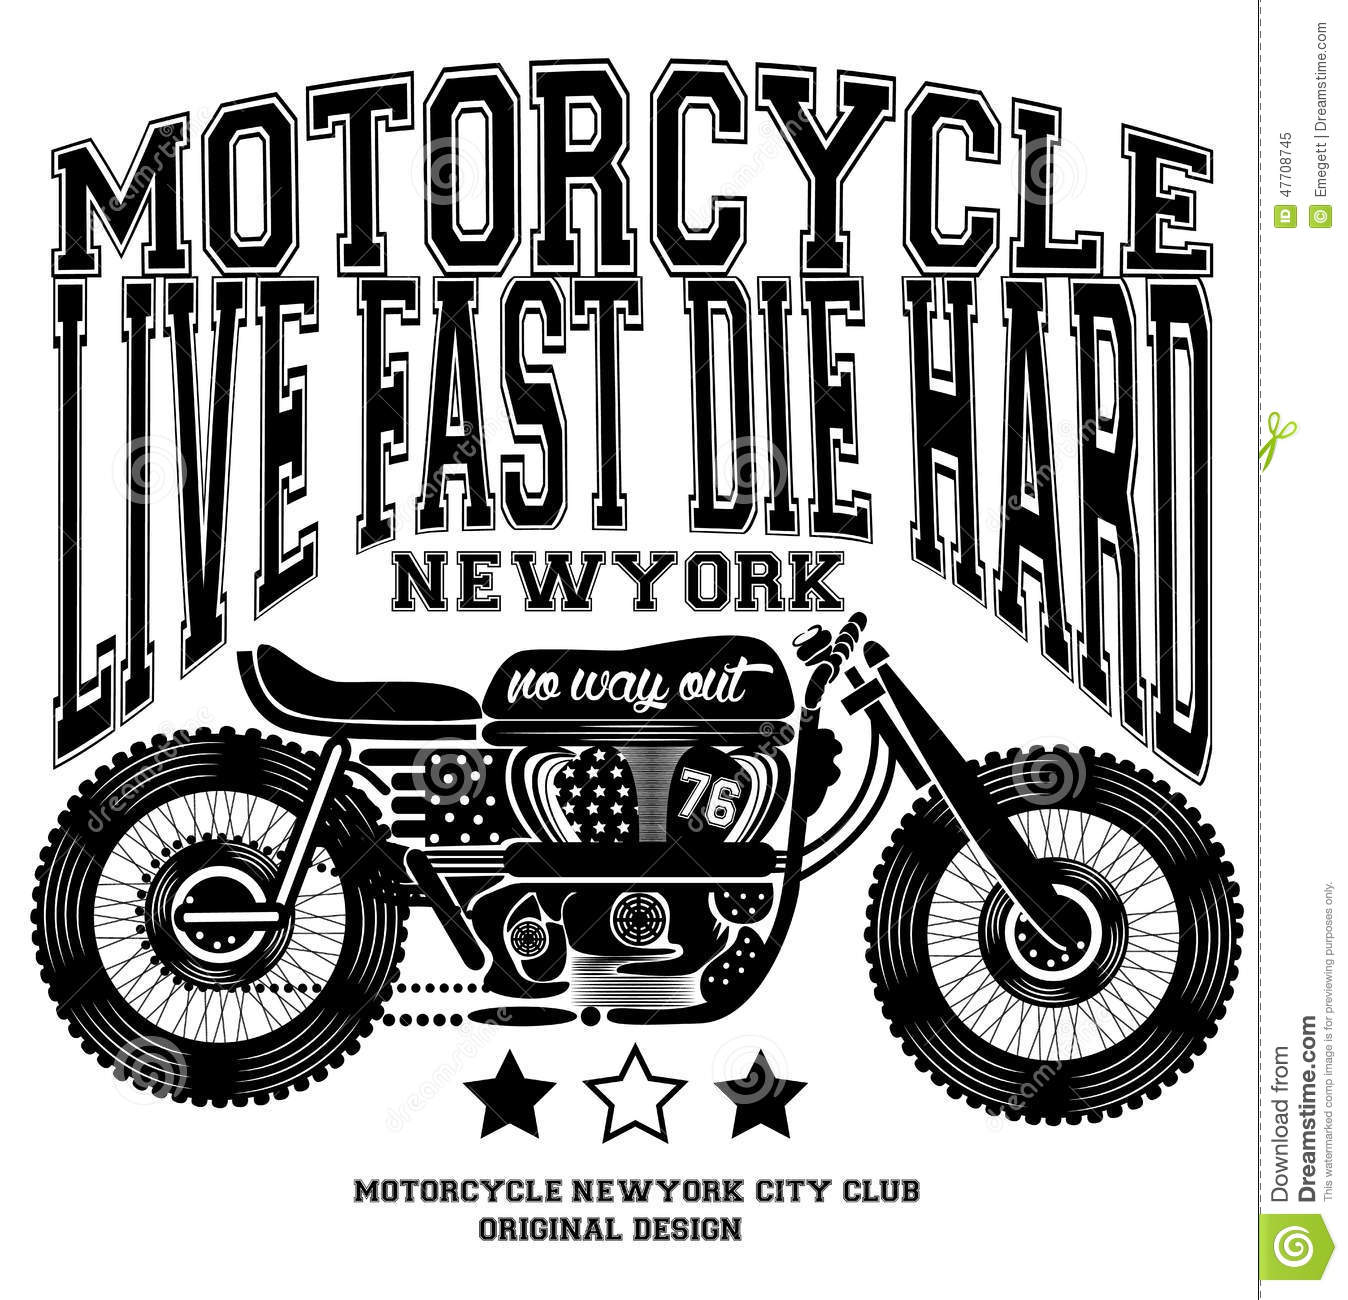 Motorcycle Vintage New York T Shirt Graphic Design Stock